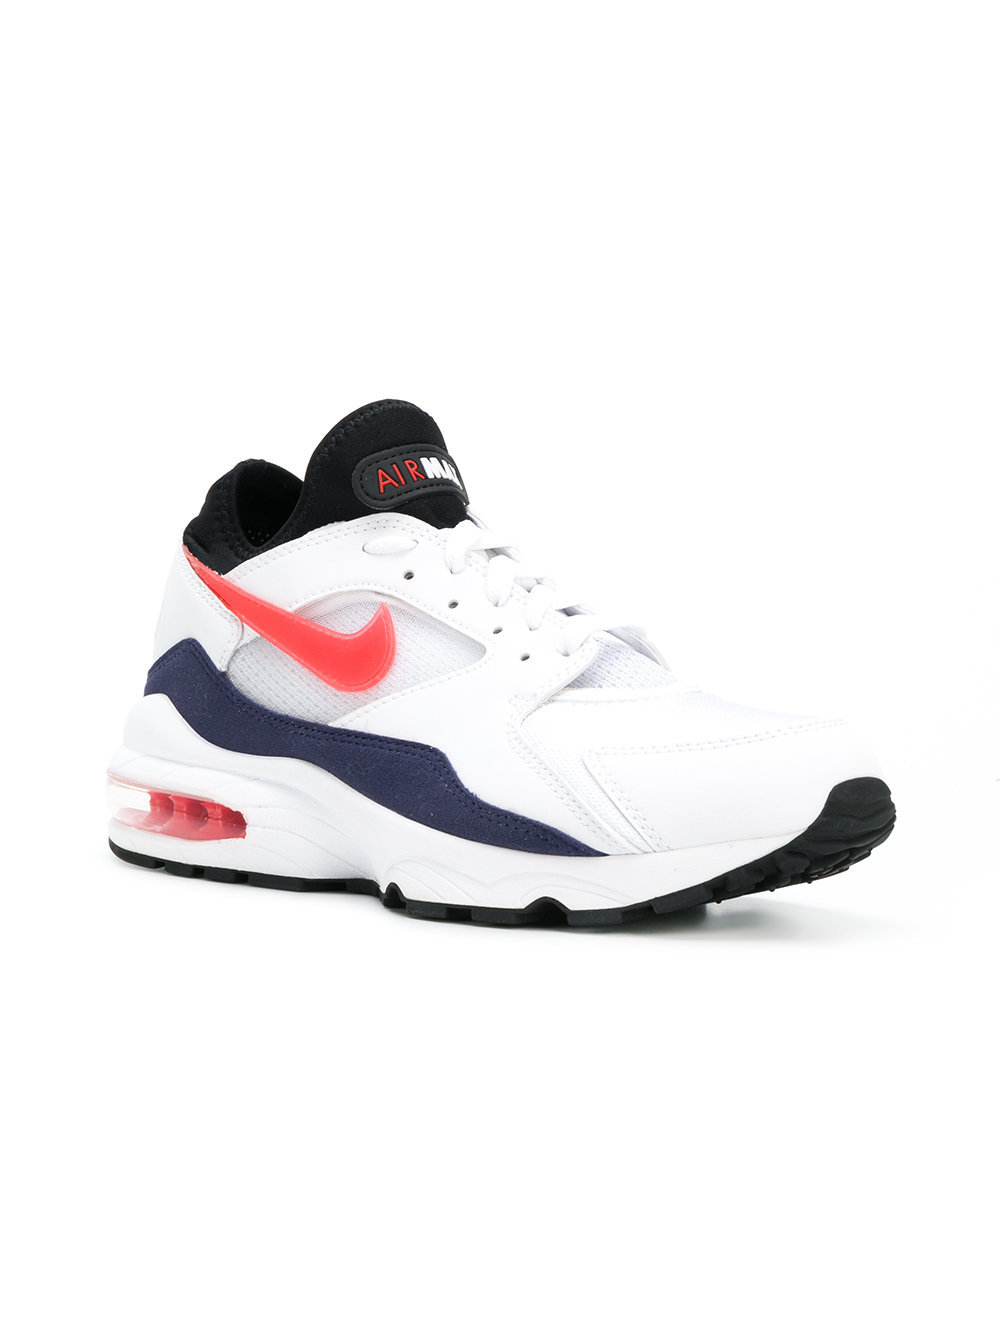 timeless design 39327 6e0a6 ... Nike Air Max 93 Sneakers ...